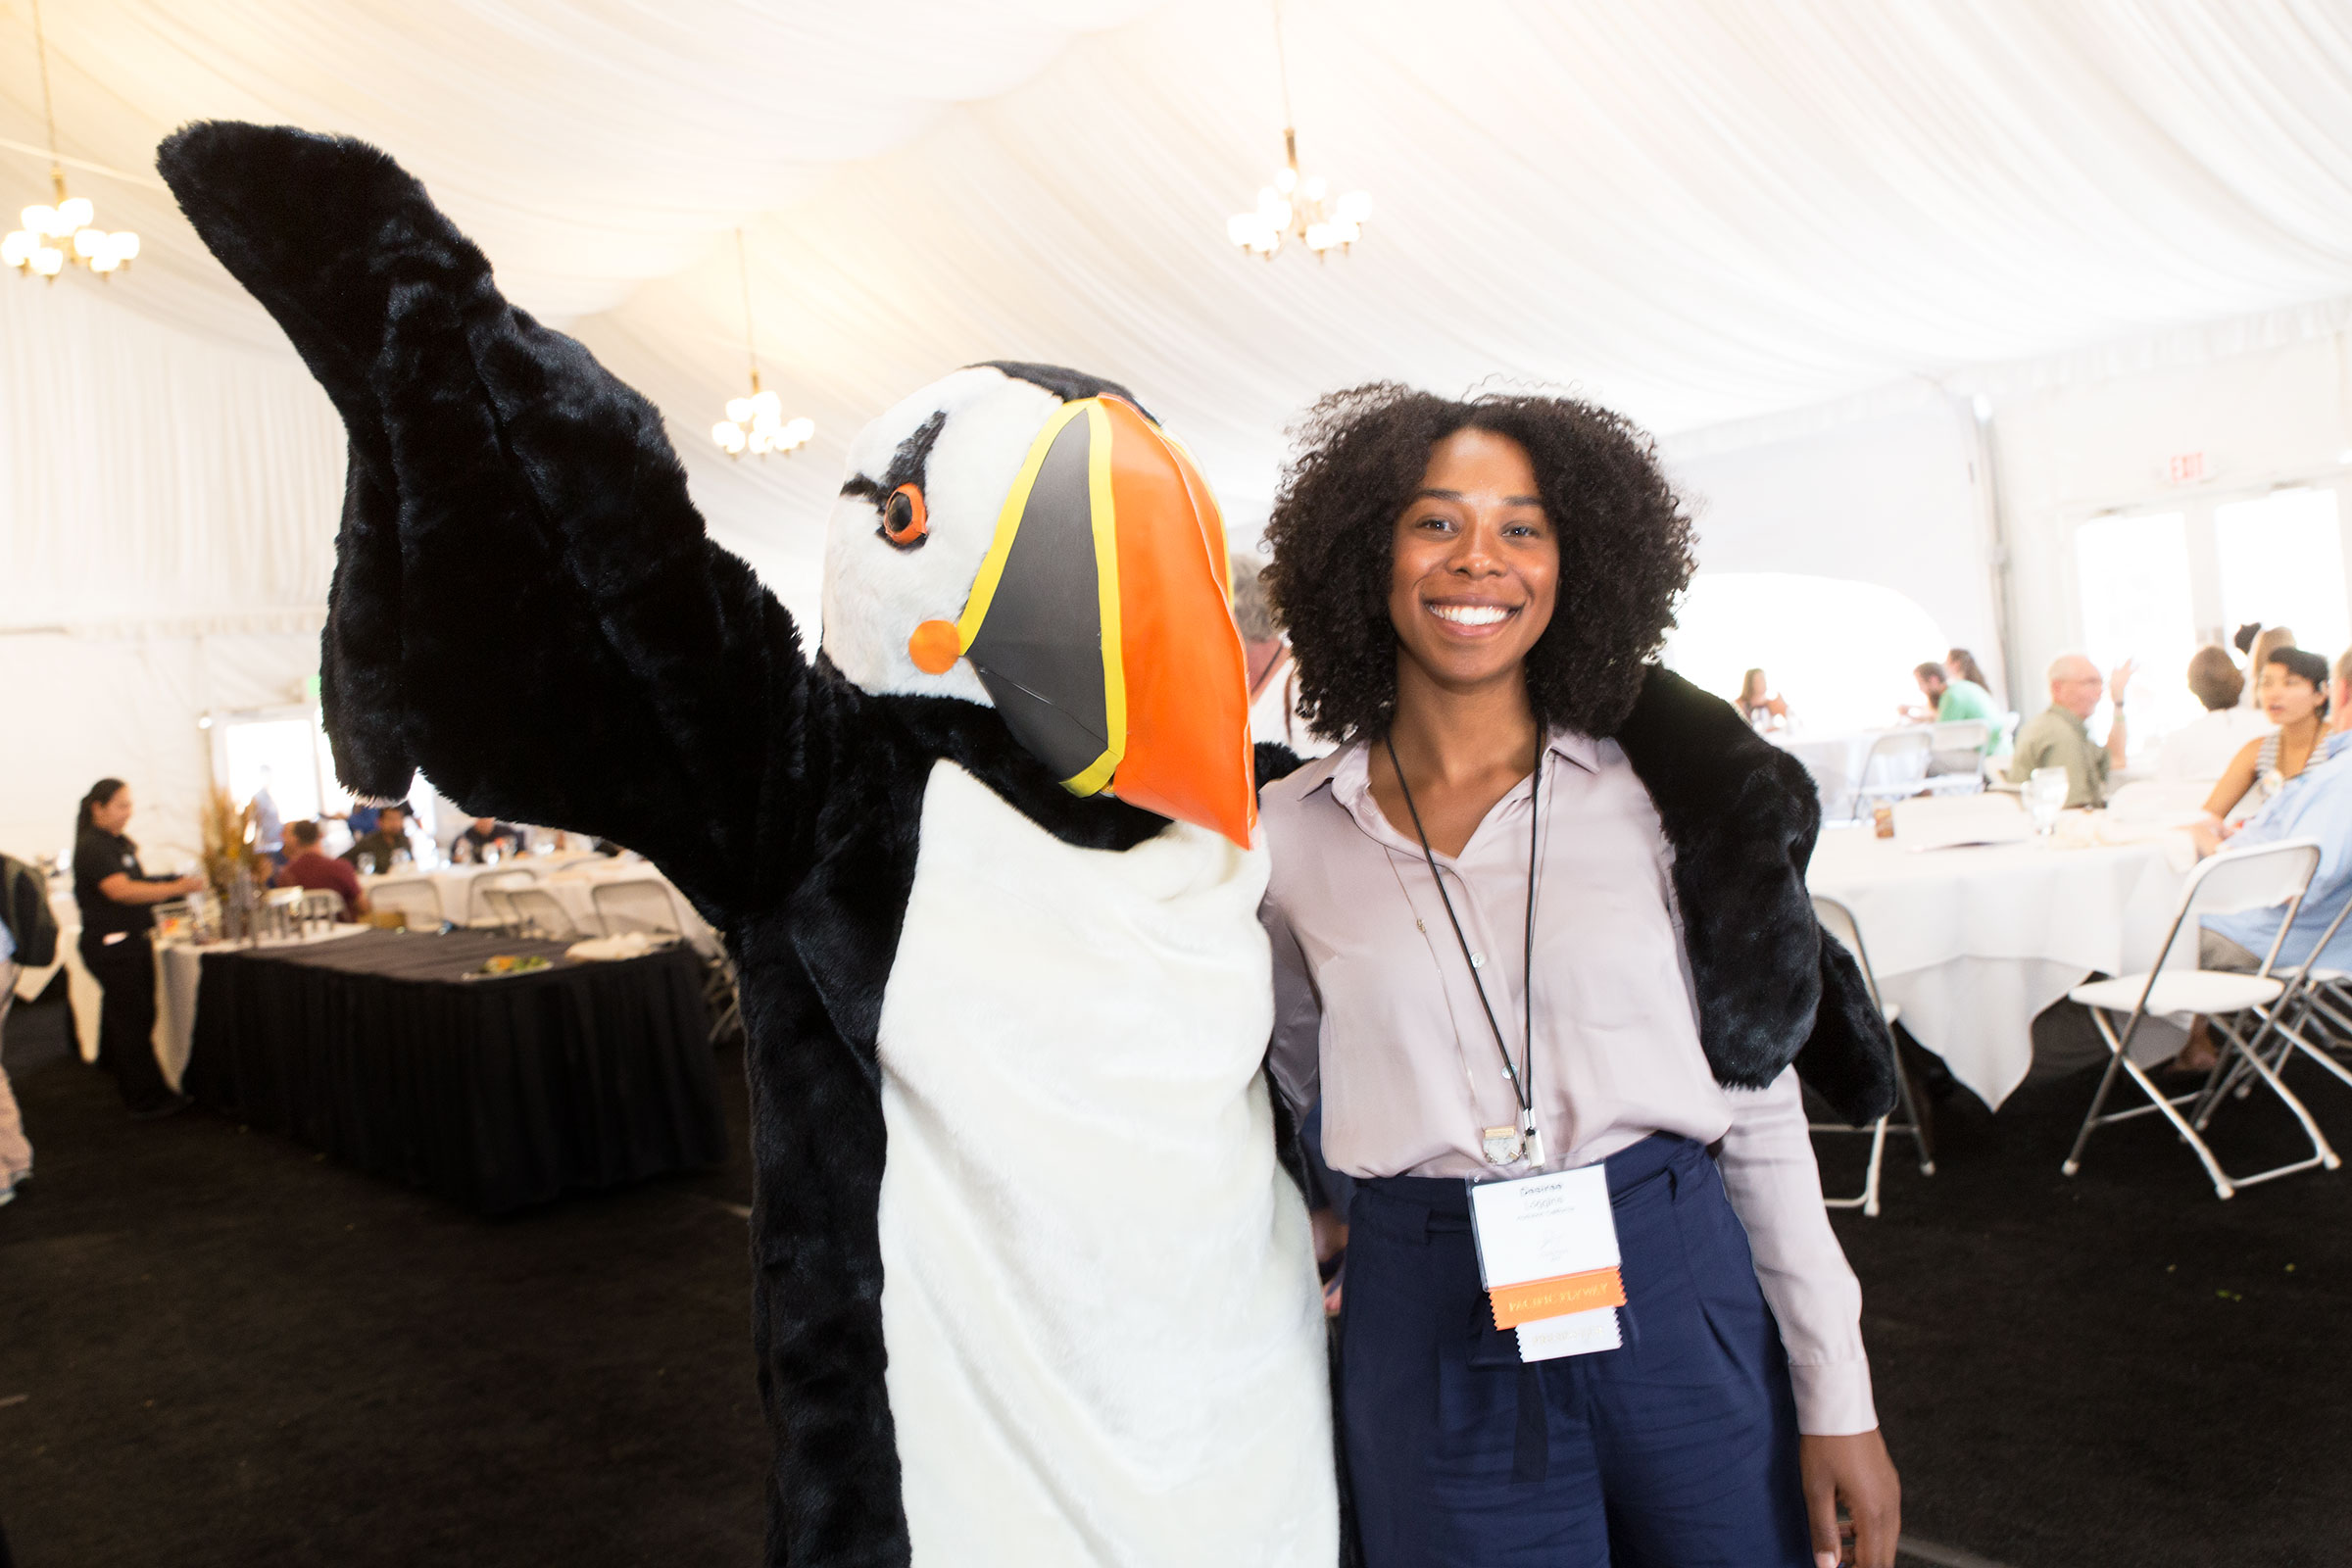 At the 2017 Audubon Convention in Park City, Utah, Loggins gave presentations to state and chapter leaders on the importance of equality, diversity, and inclusion. Camilla Cerea/Audubon